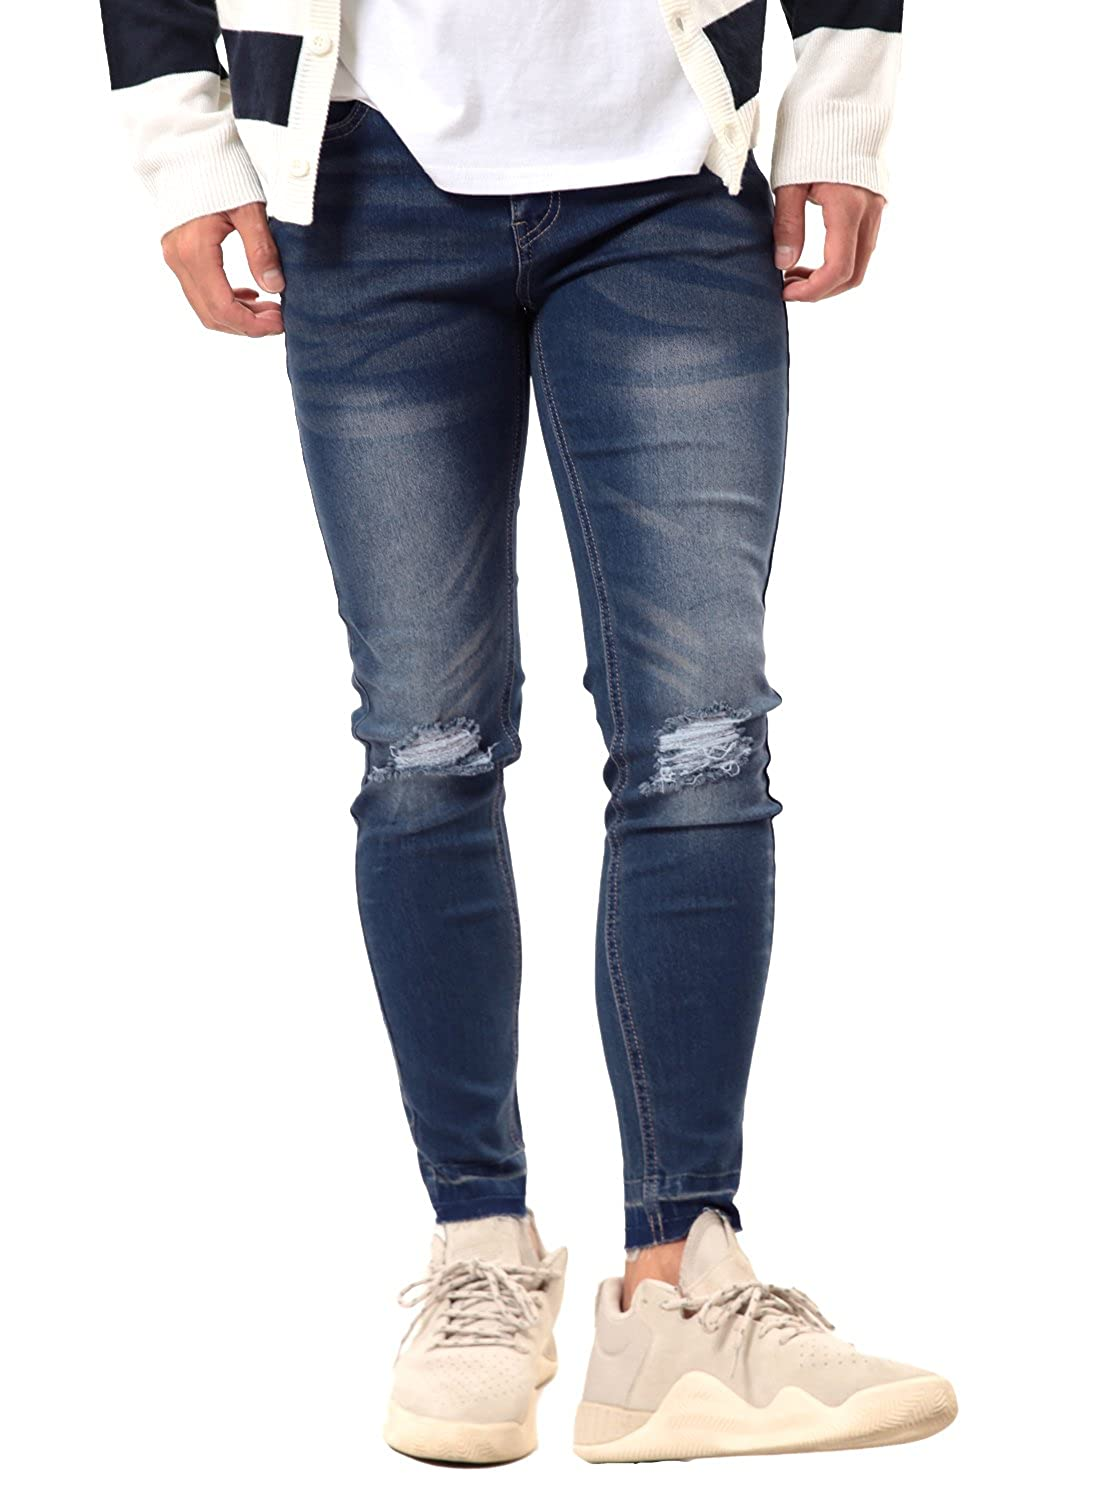 b90d7e9d5a1 Top 10 wholesale Black Ripped Skinny Jeans Male. Wholesale clothing